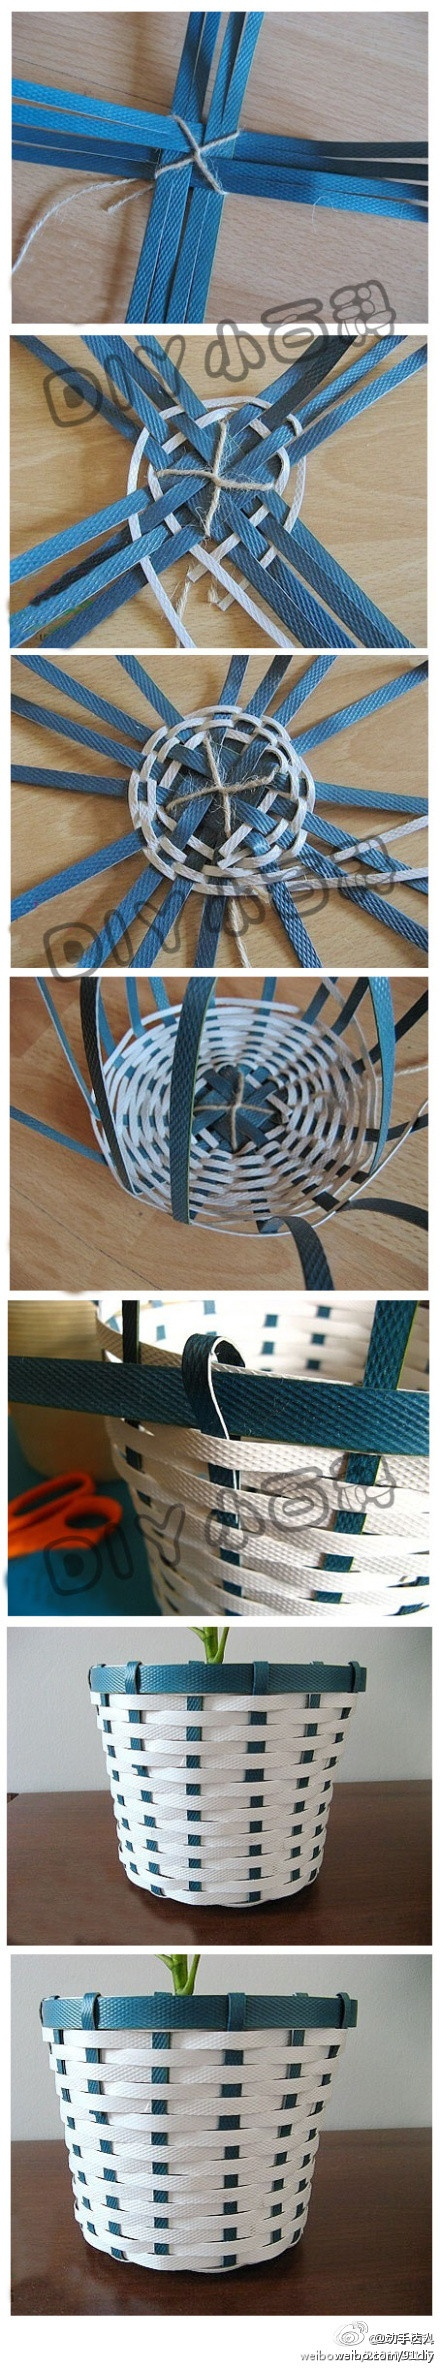 Basket made from quilling strips